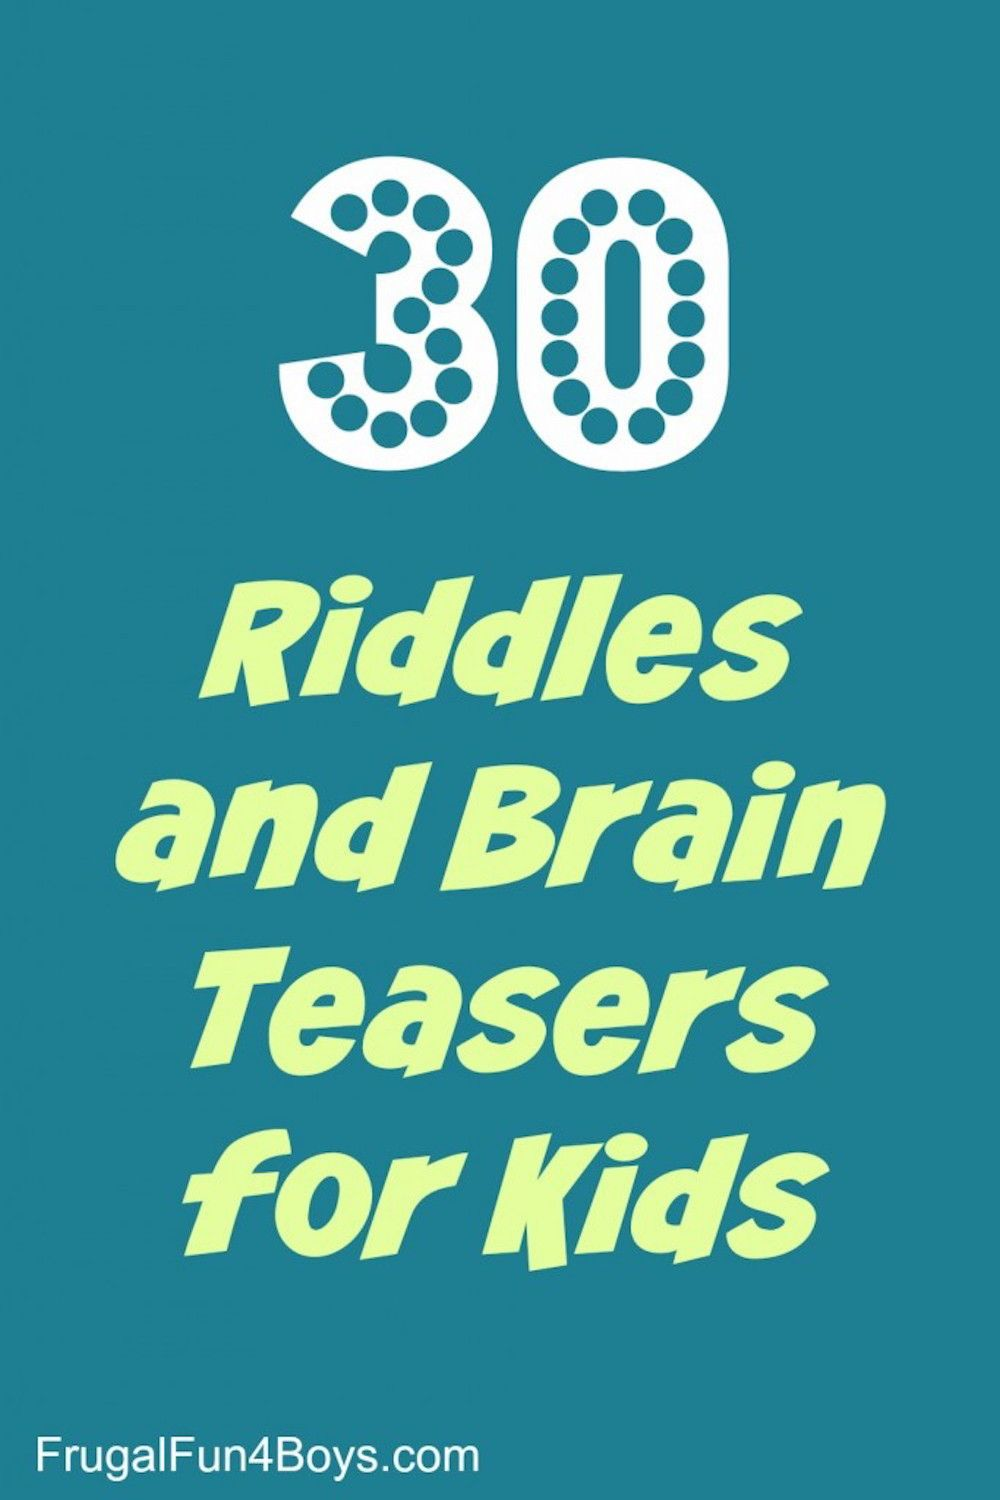 50 Riddles And Brain Teasers For Kids Free Printable Frugal Fun For Boys And Girls Brain Teasers For Kids Brain Teasers Jokes For Kids